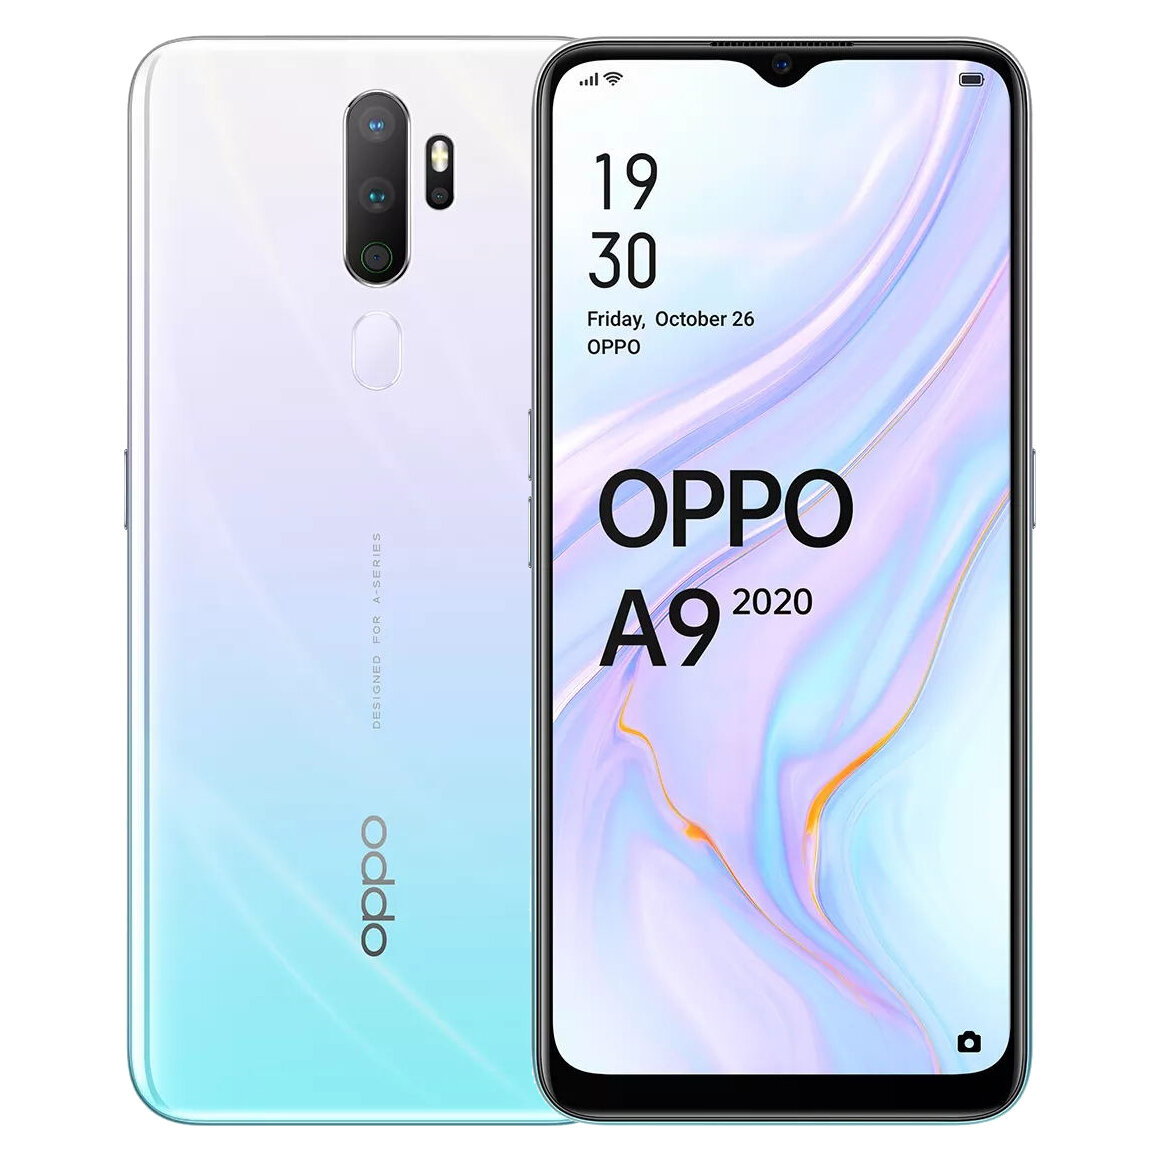 OPPO A9 2020 6.5 inch HD+ 5000mAh Android 9.0 48MP Quad Rear Cameras 4GB 128GB Snapdragon 665 Octa Core 4G Smartphone - Vanilla Mint